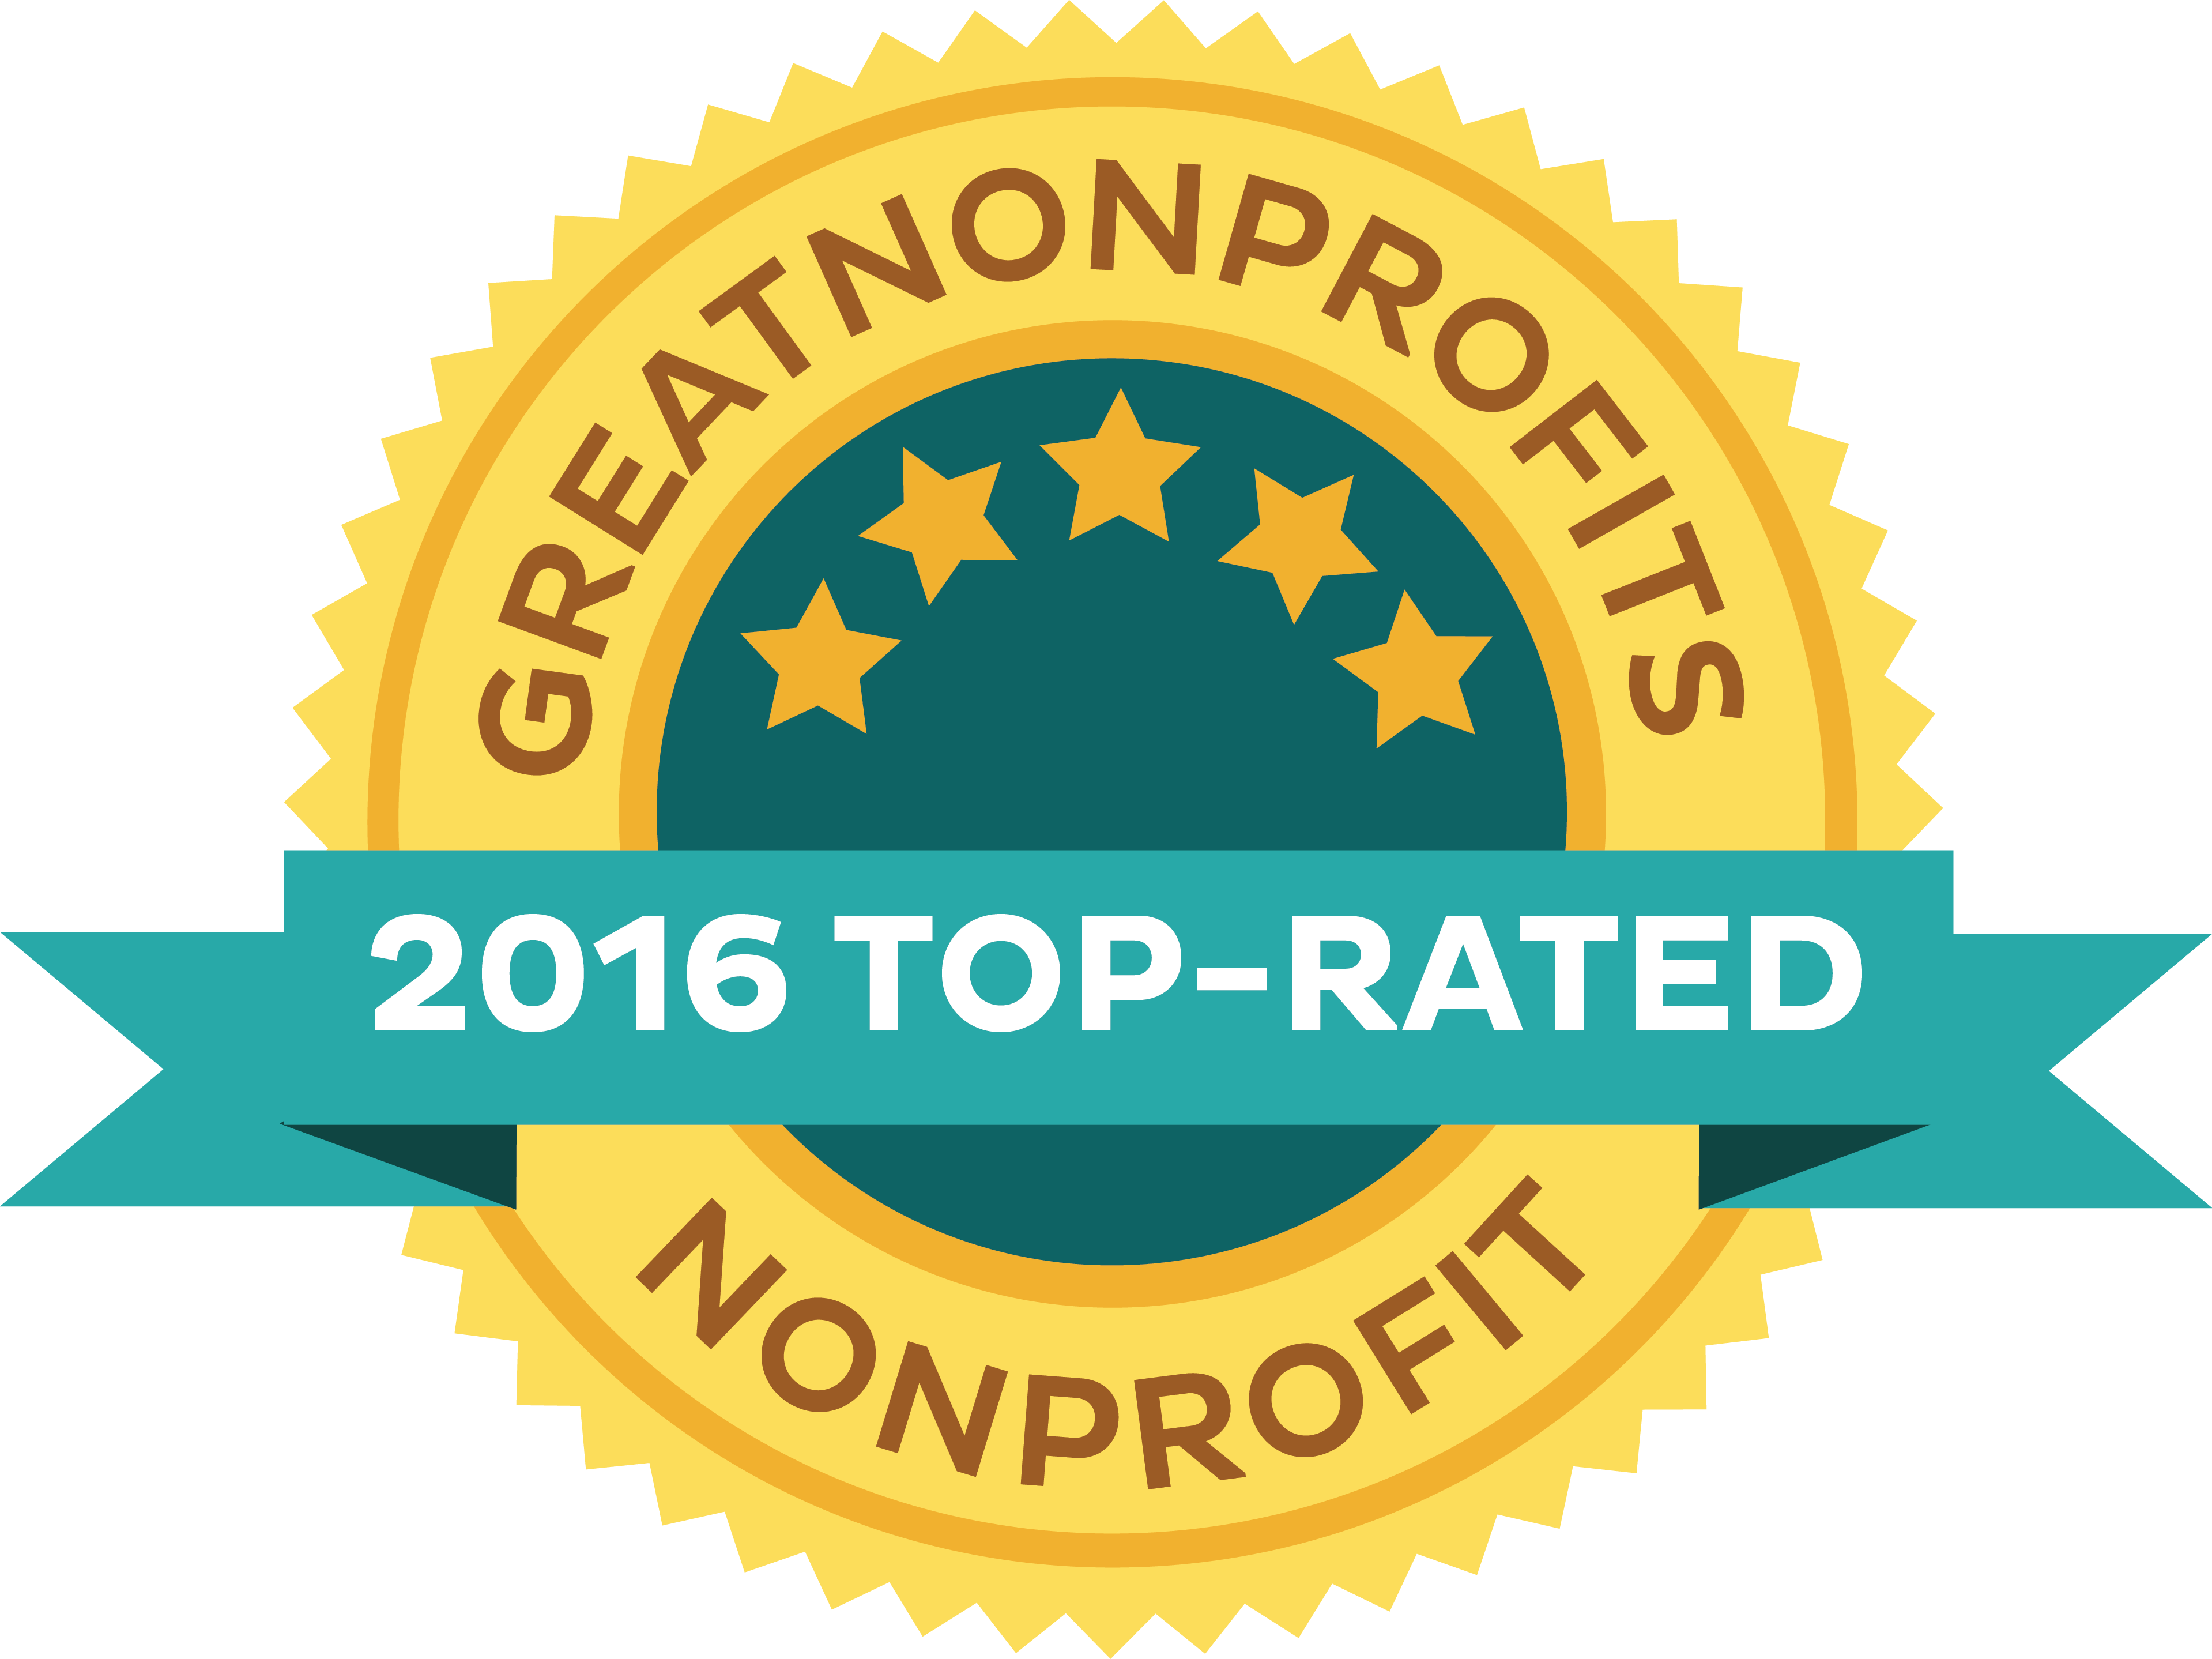 2016 Top-Rated Non-Profit